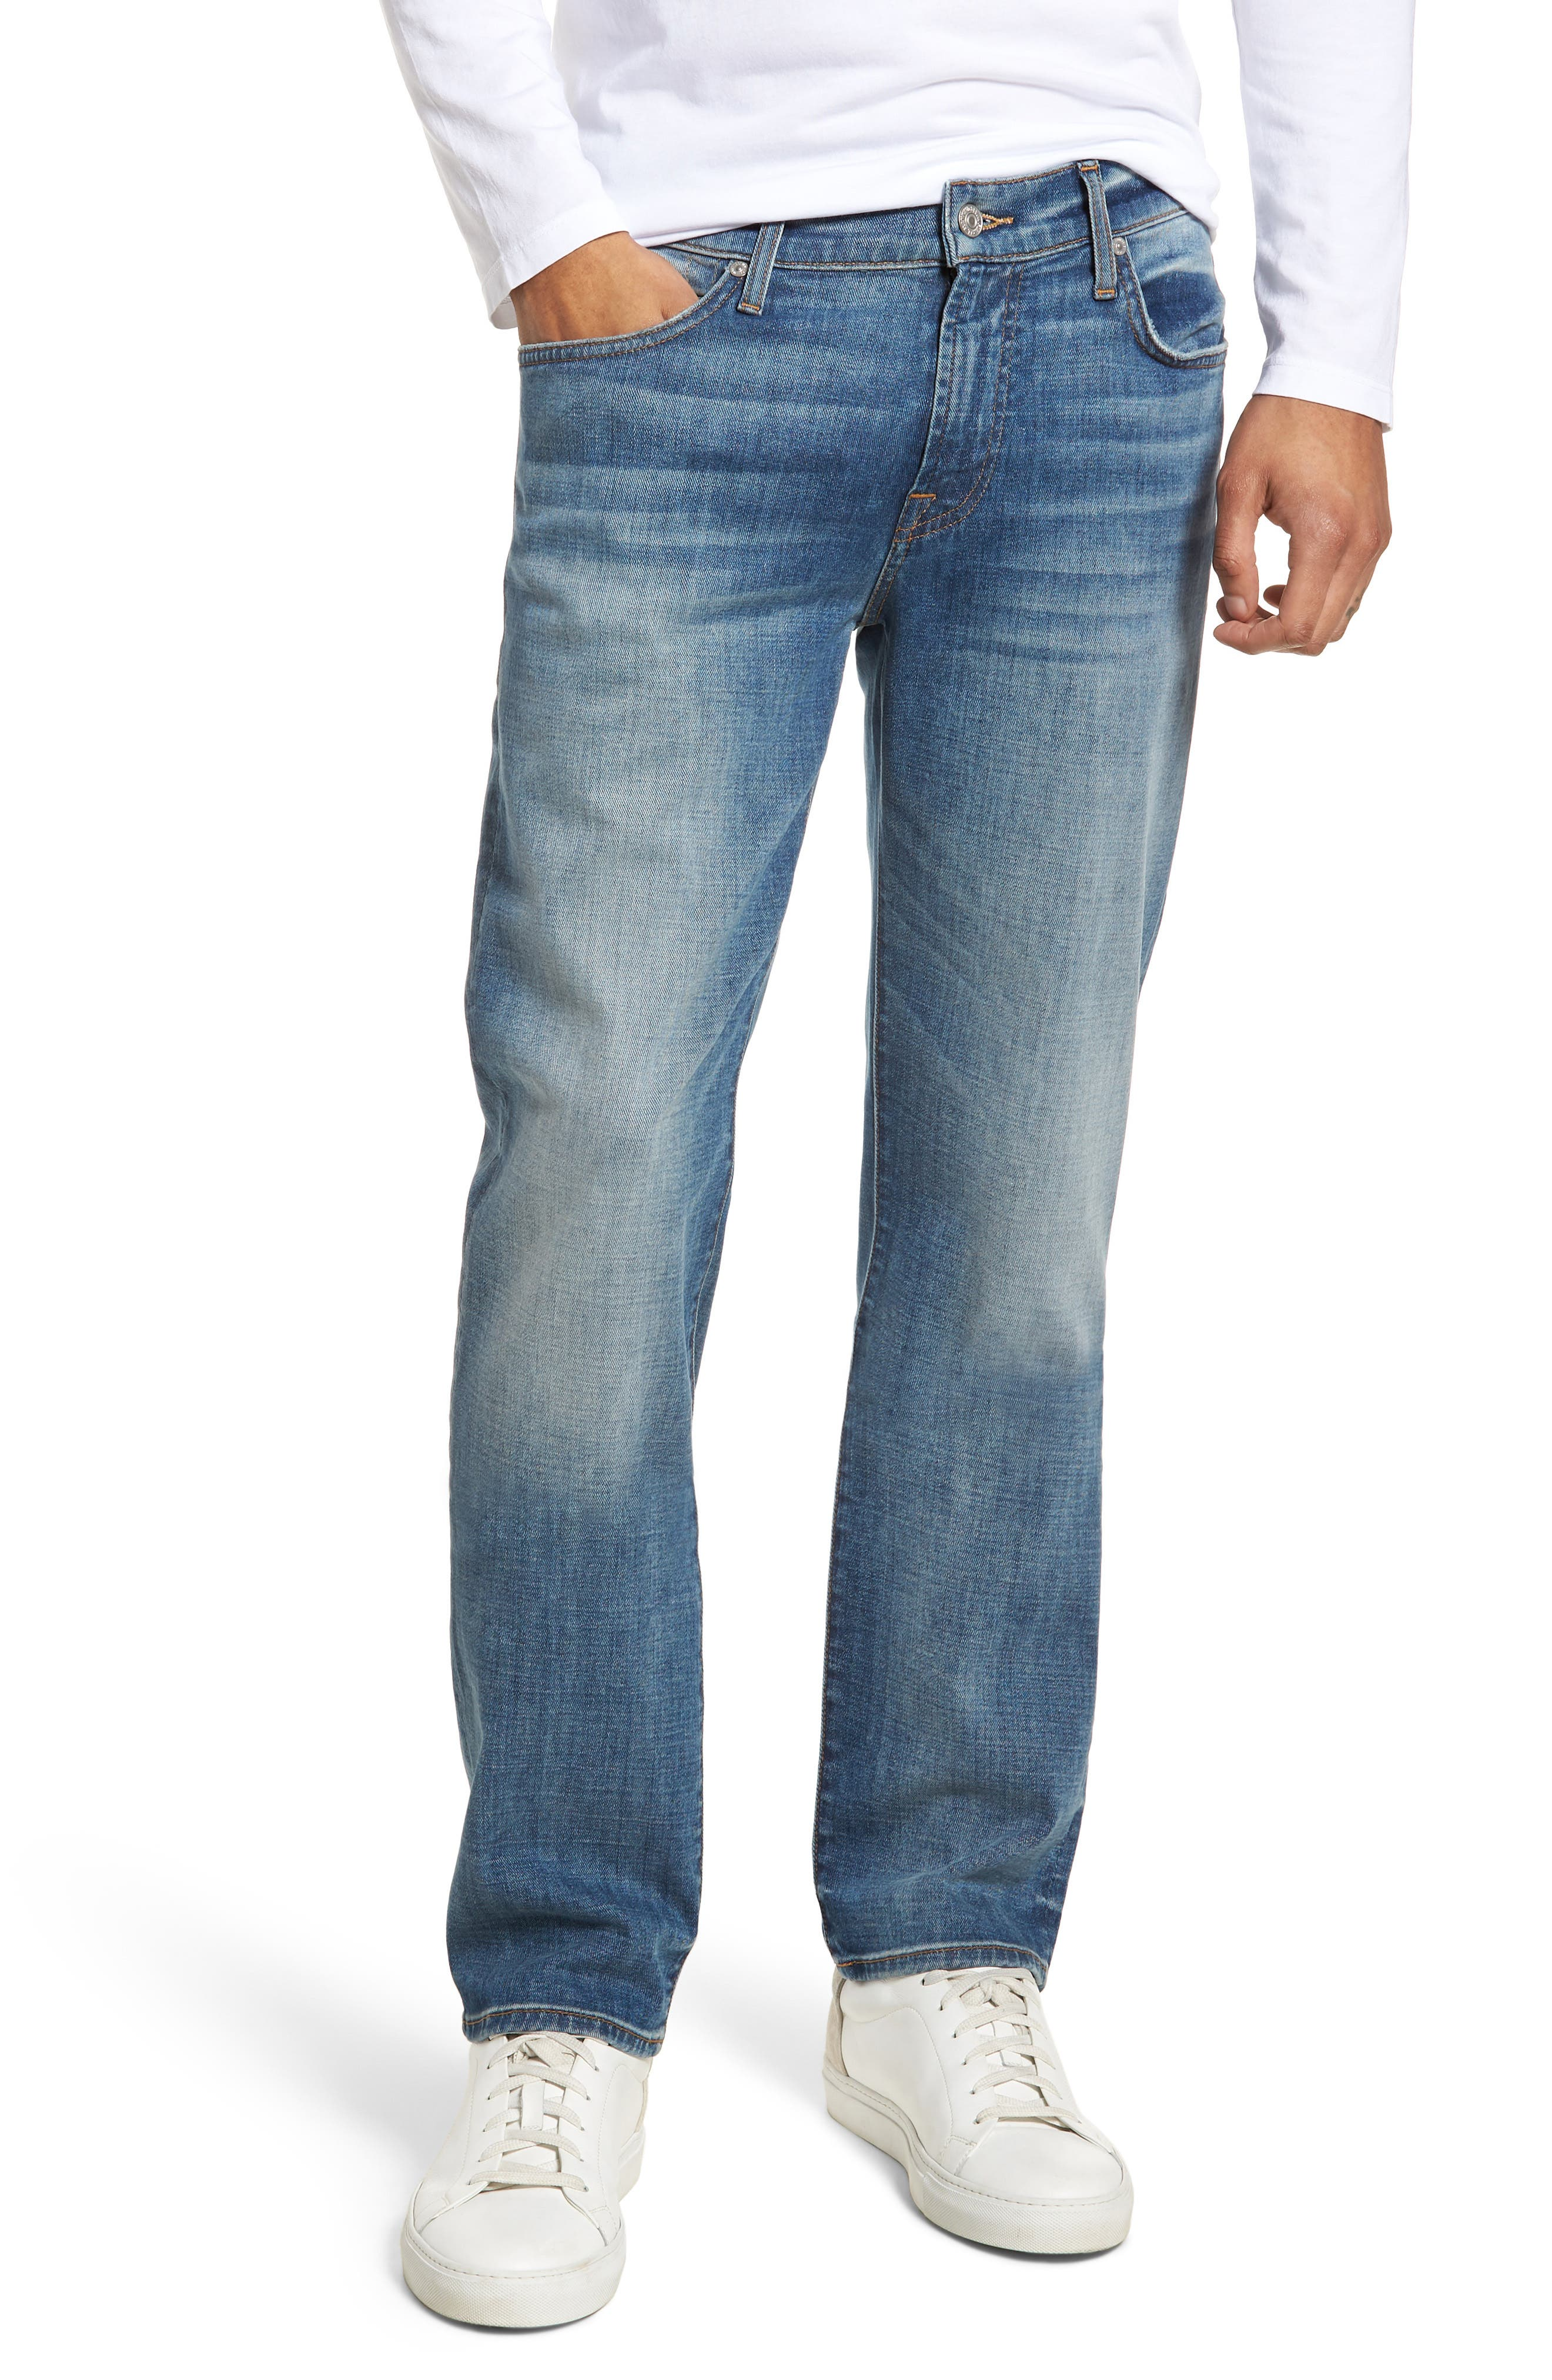 7 For All Mankind Slimmy Slim Fit Jeans,                         Main,                         color, Desert Warrior